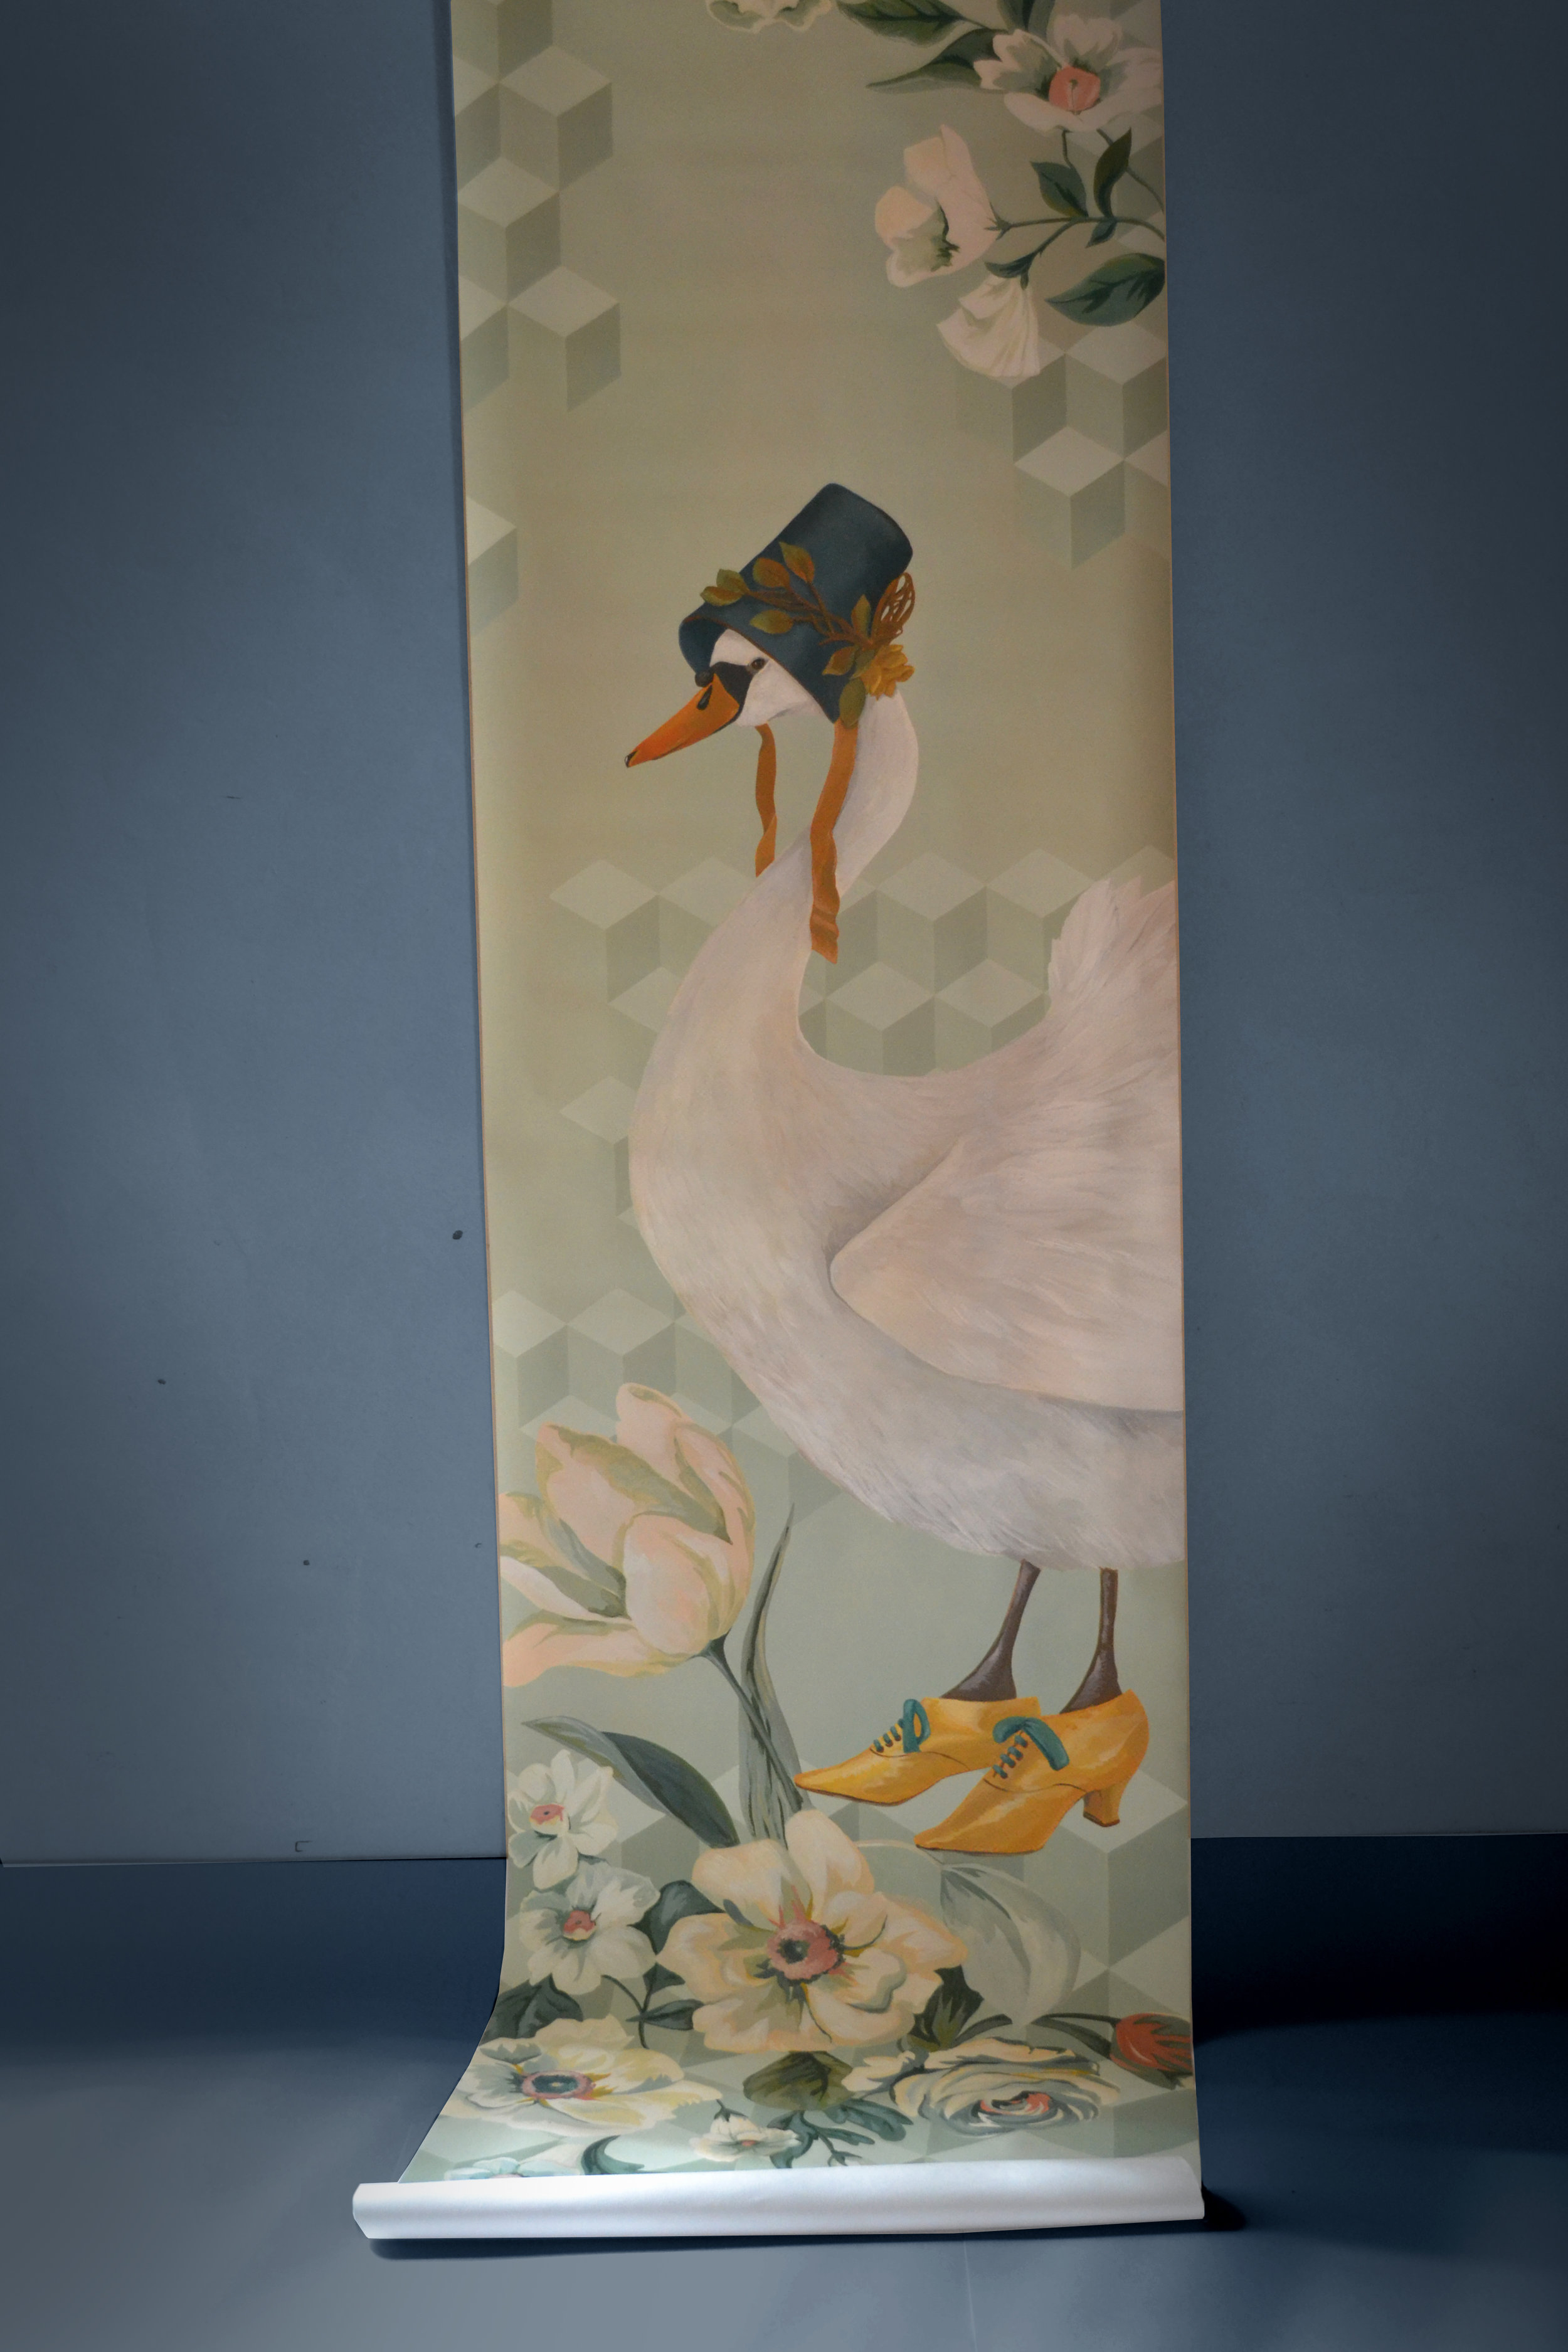 Swan Wall hanging – Exclusively available within the UK at  www.annas-attic.com